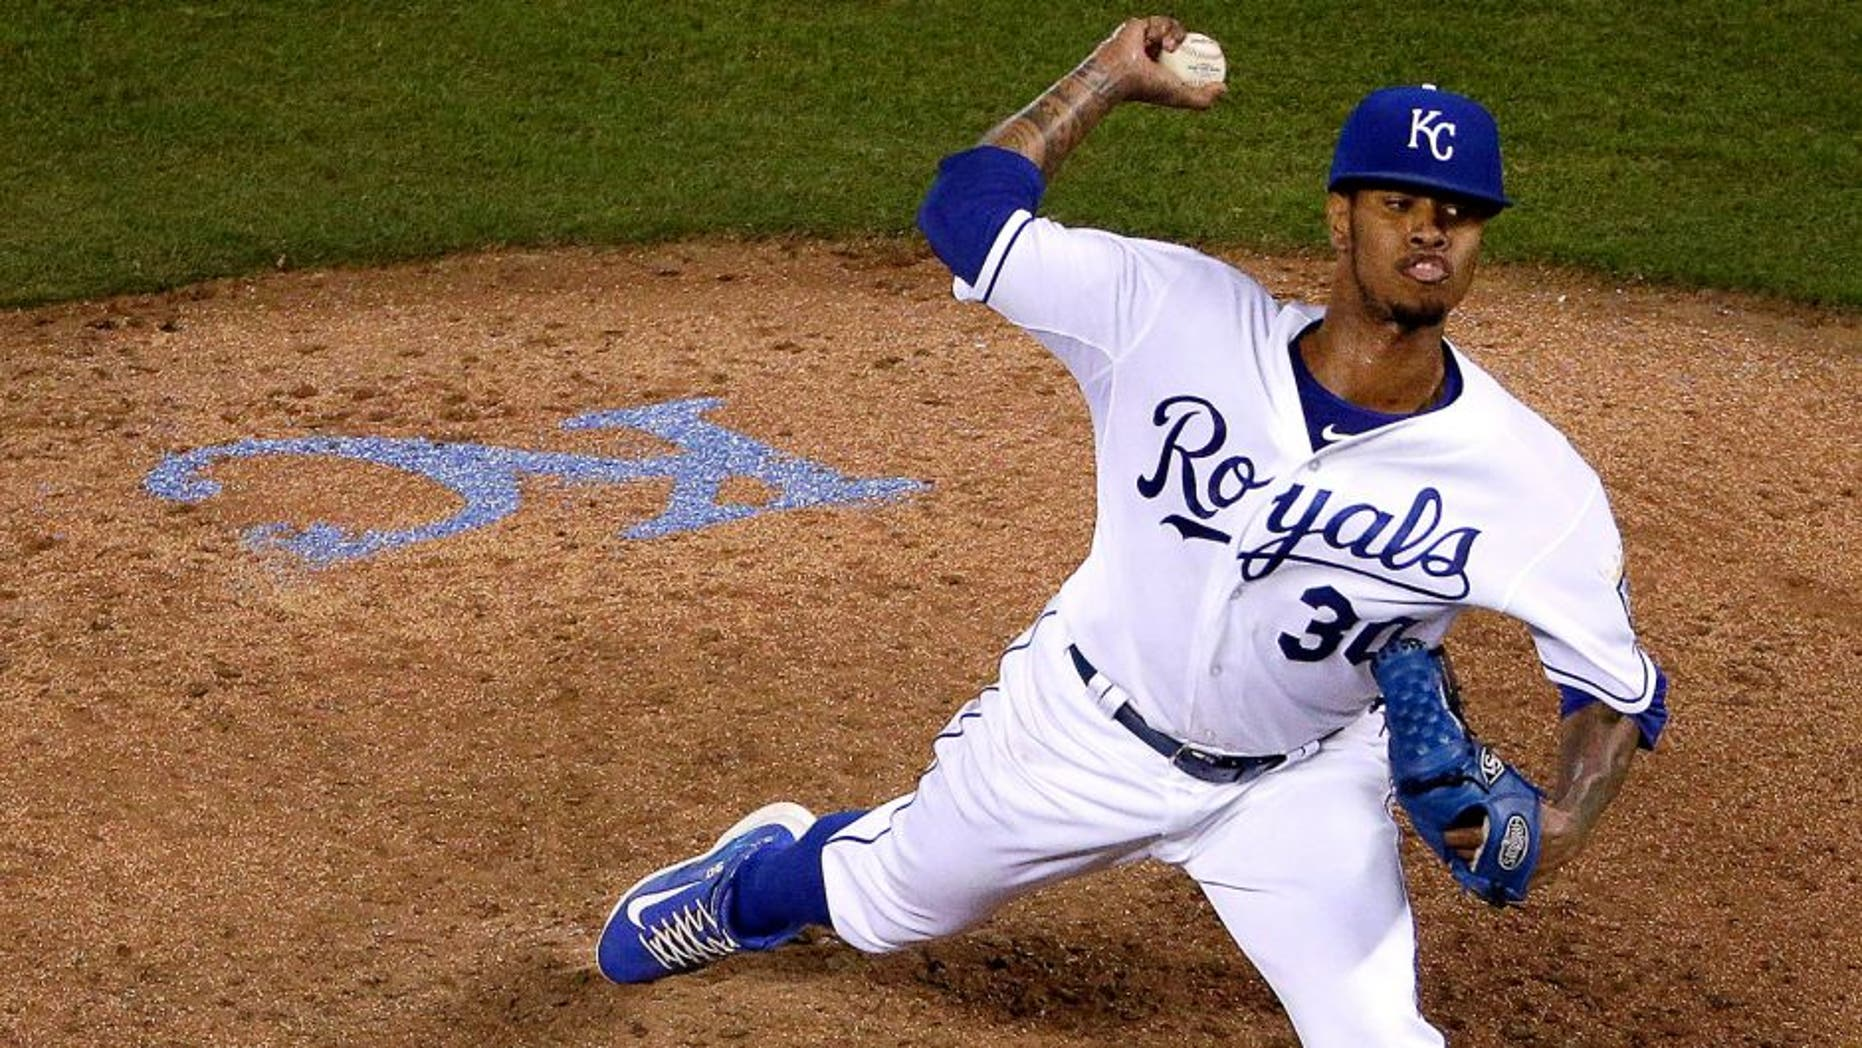 ansas City Royals Yordano Ventura in game against the Detroit Tigers in September 2015.